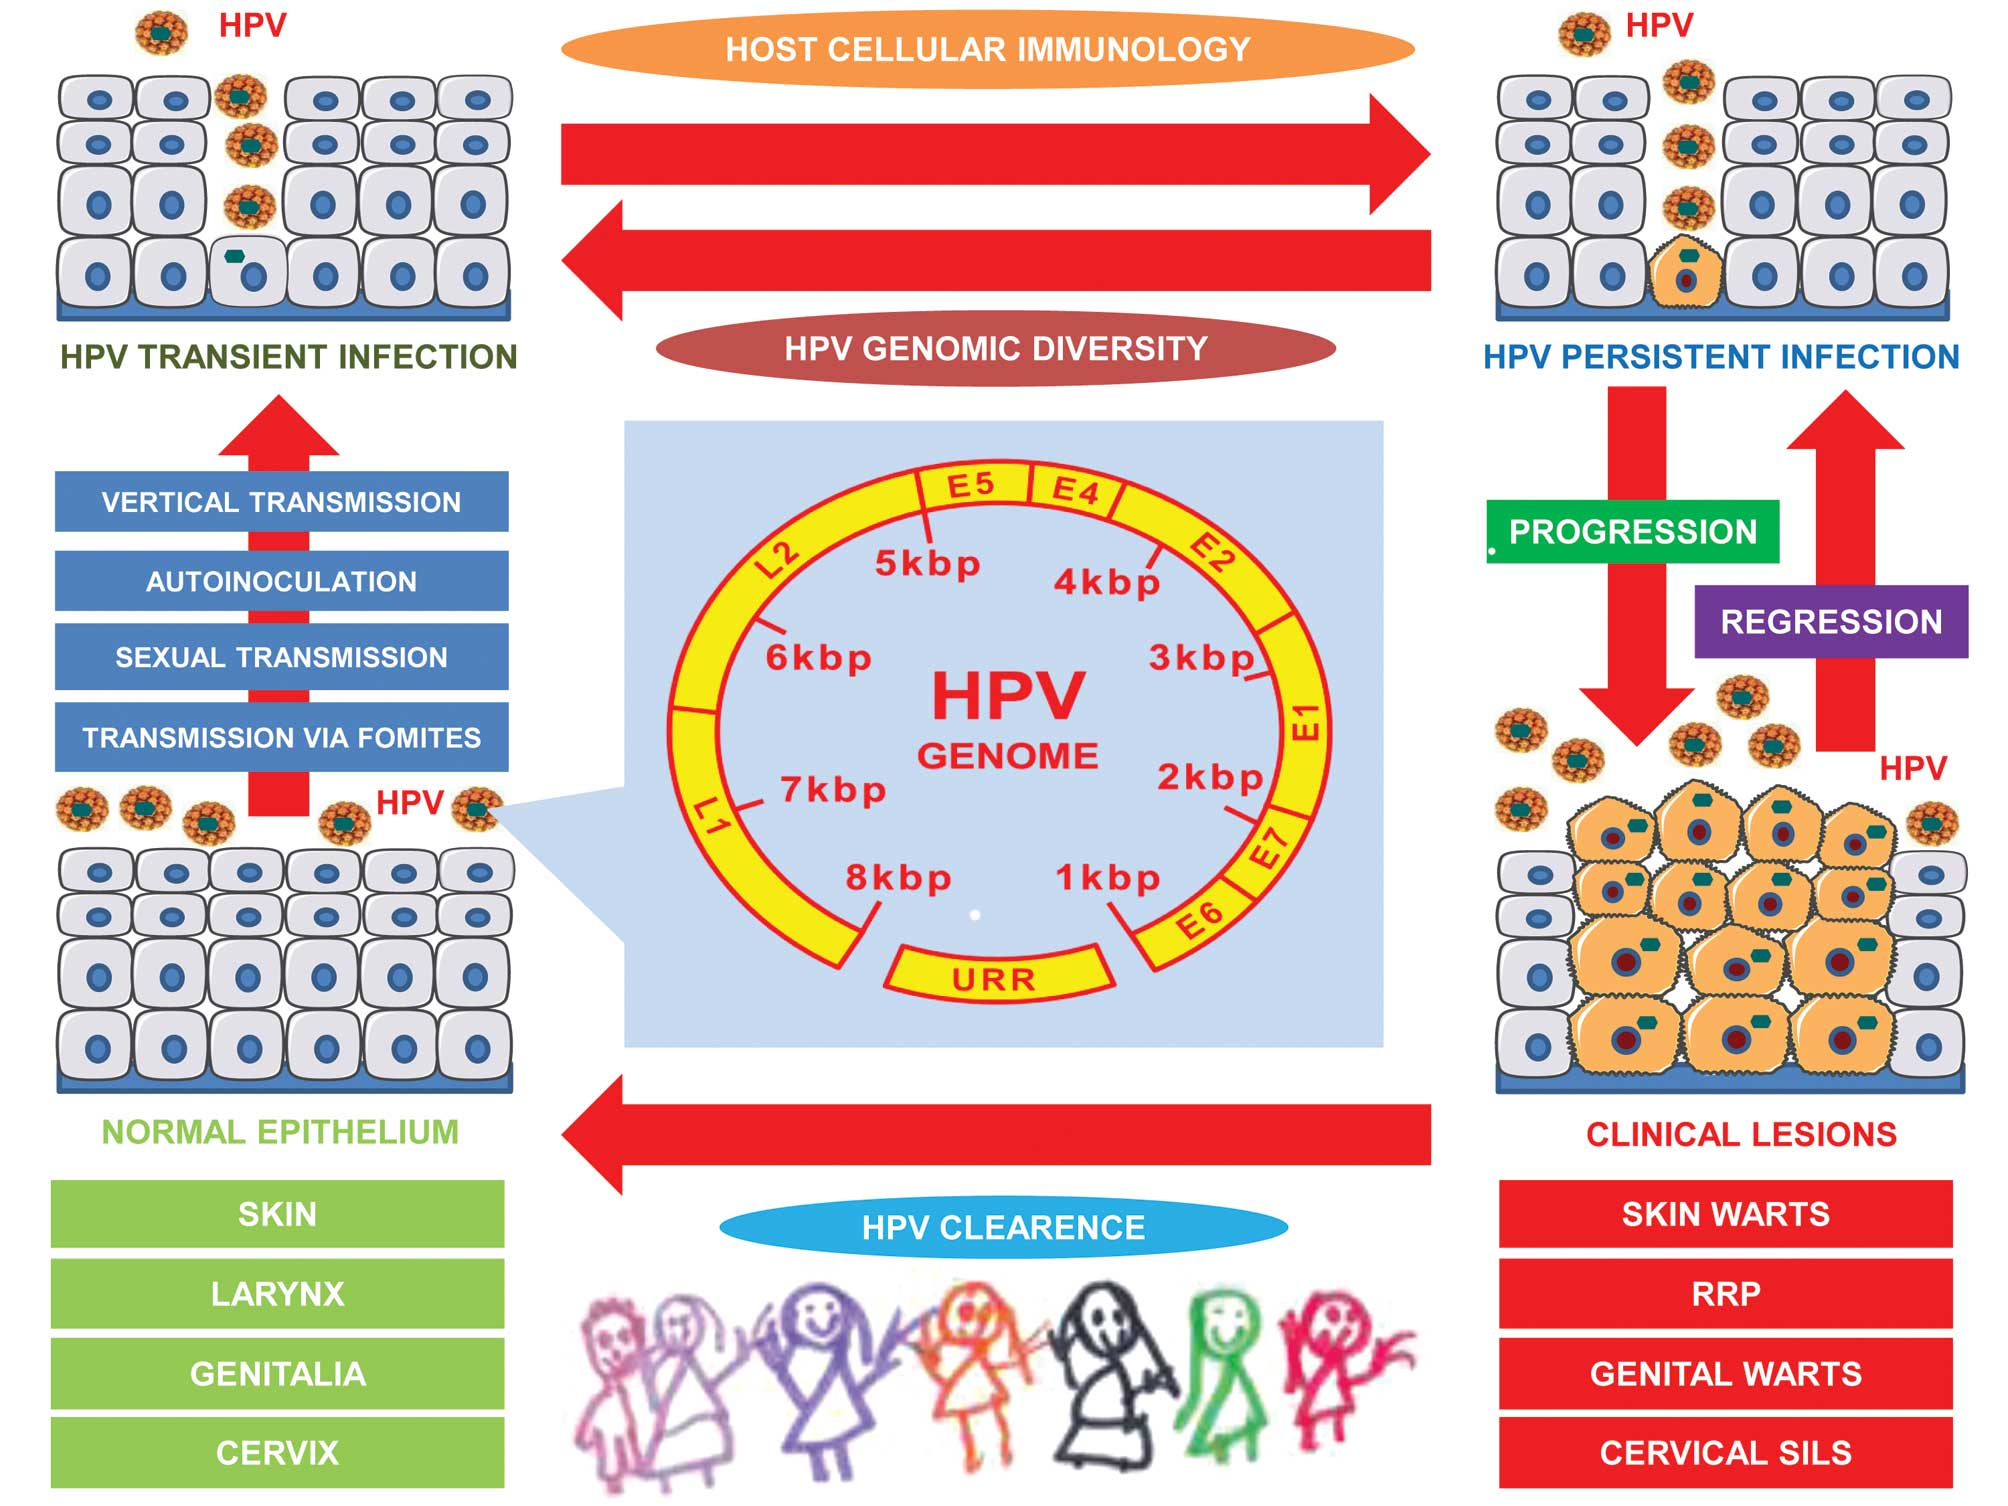 Hpv virus positive. Helminthic therapy inflammation